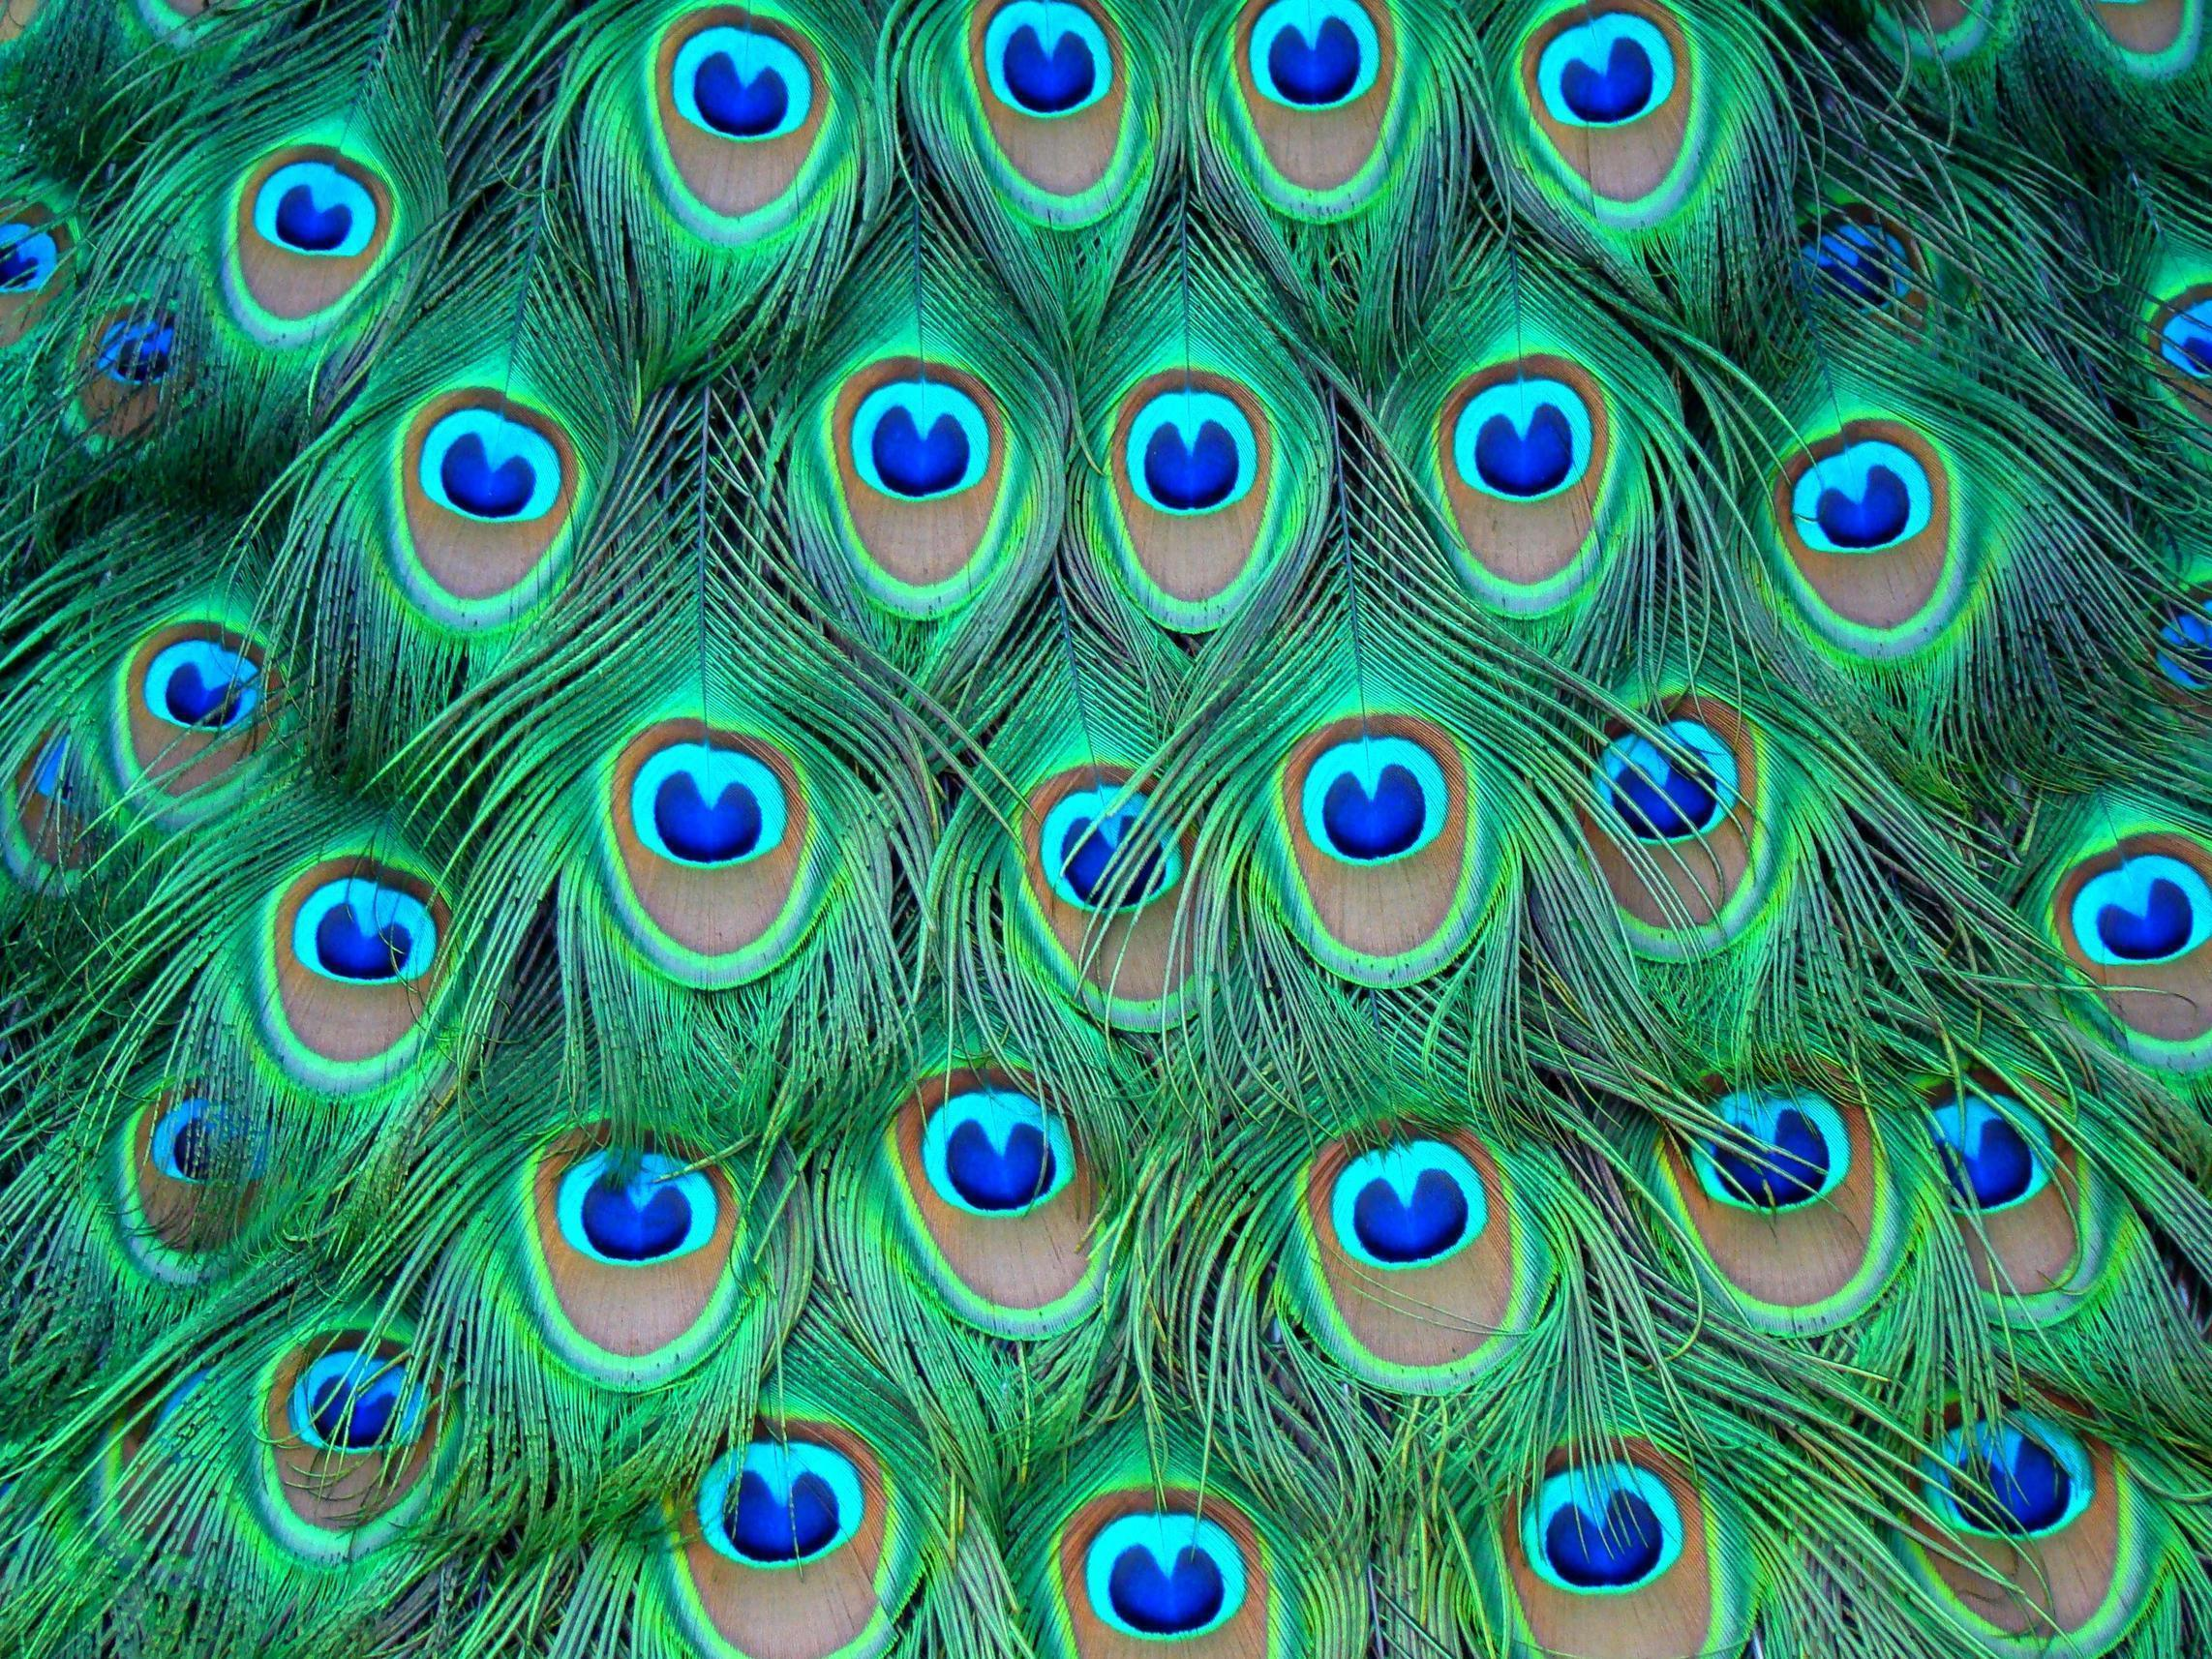 Wallpapers Of Peacock Feathers HD 2015 2285x1714